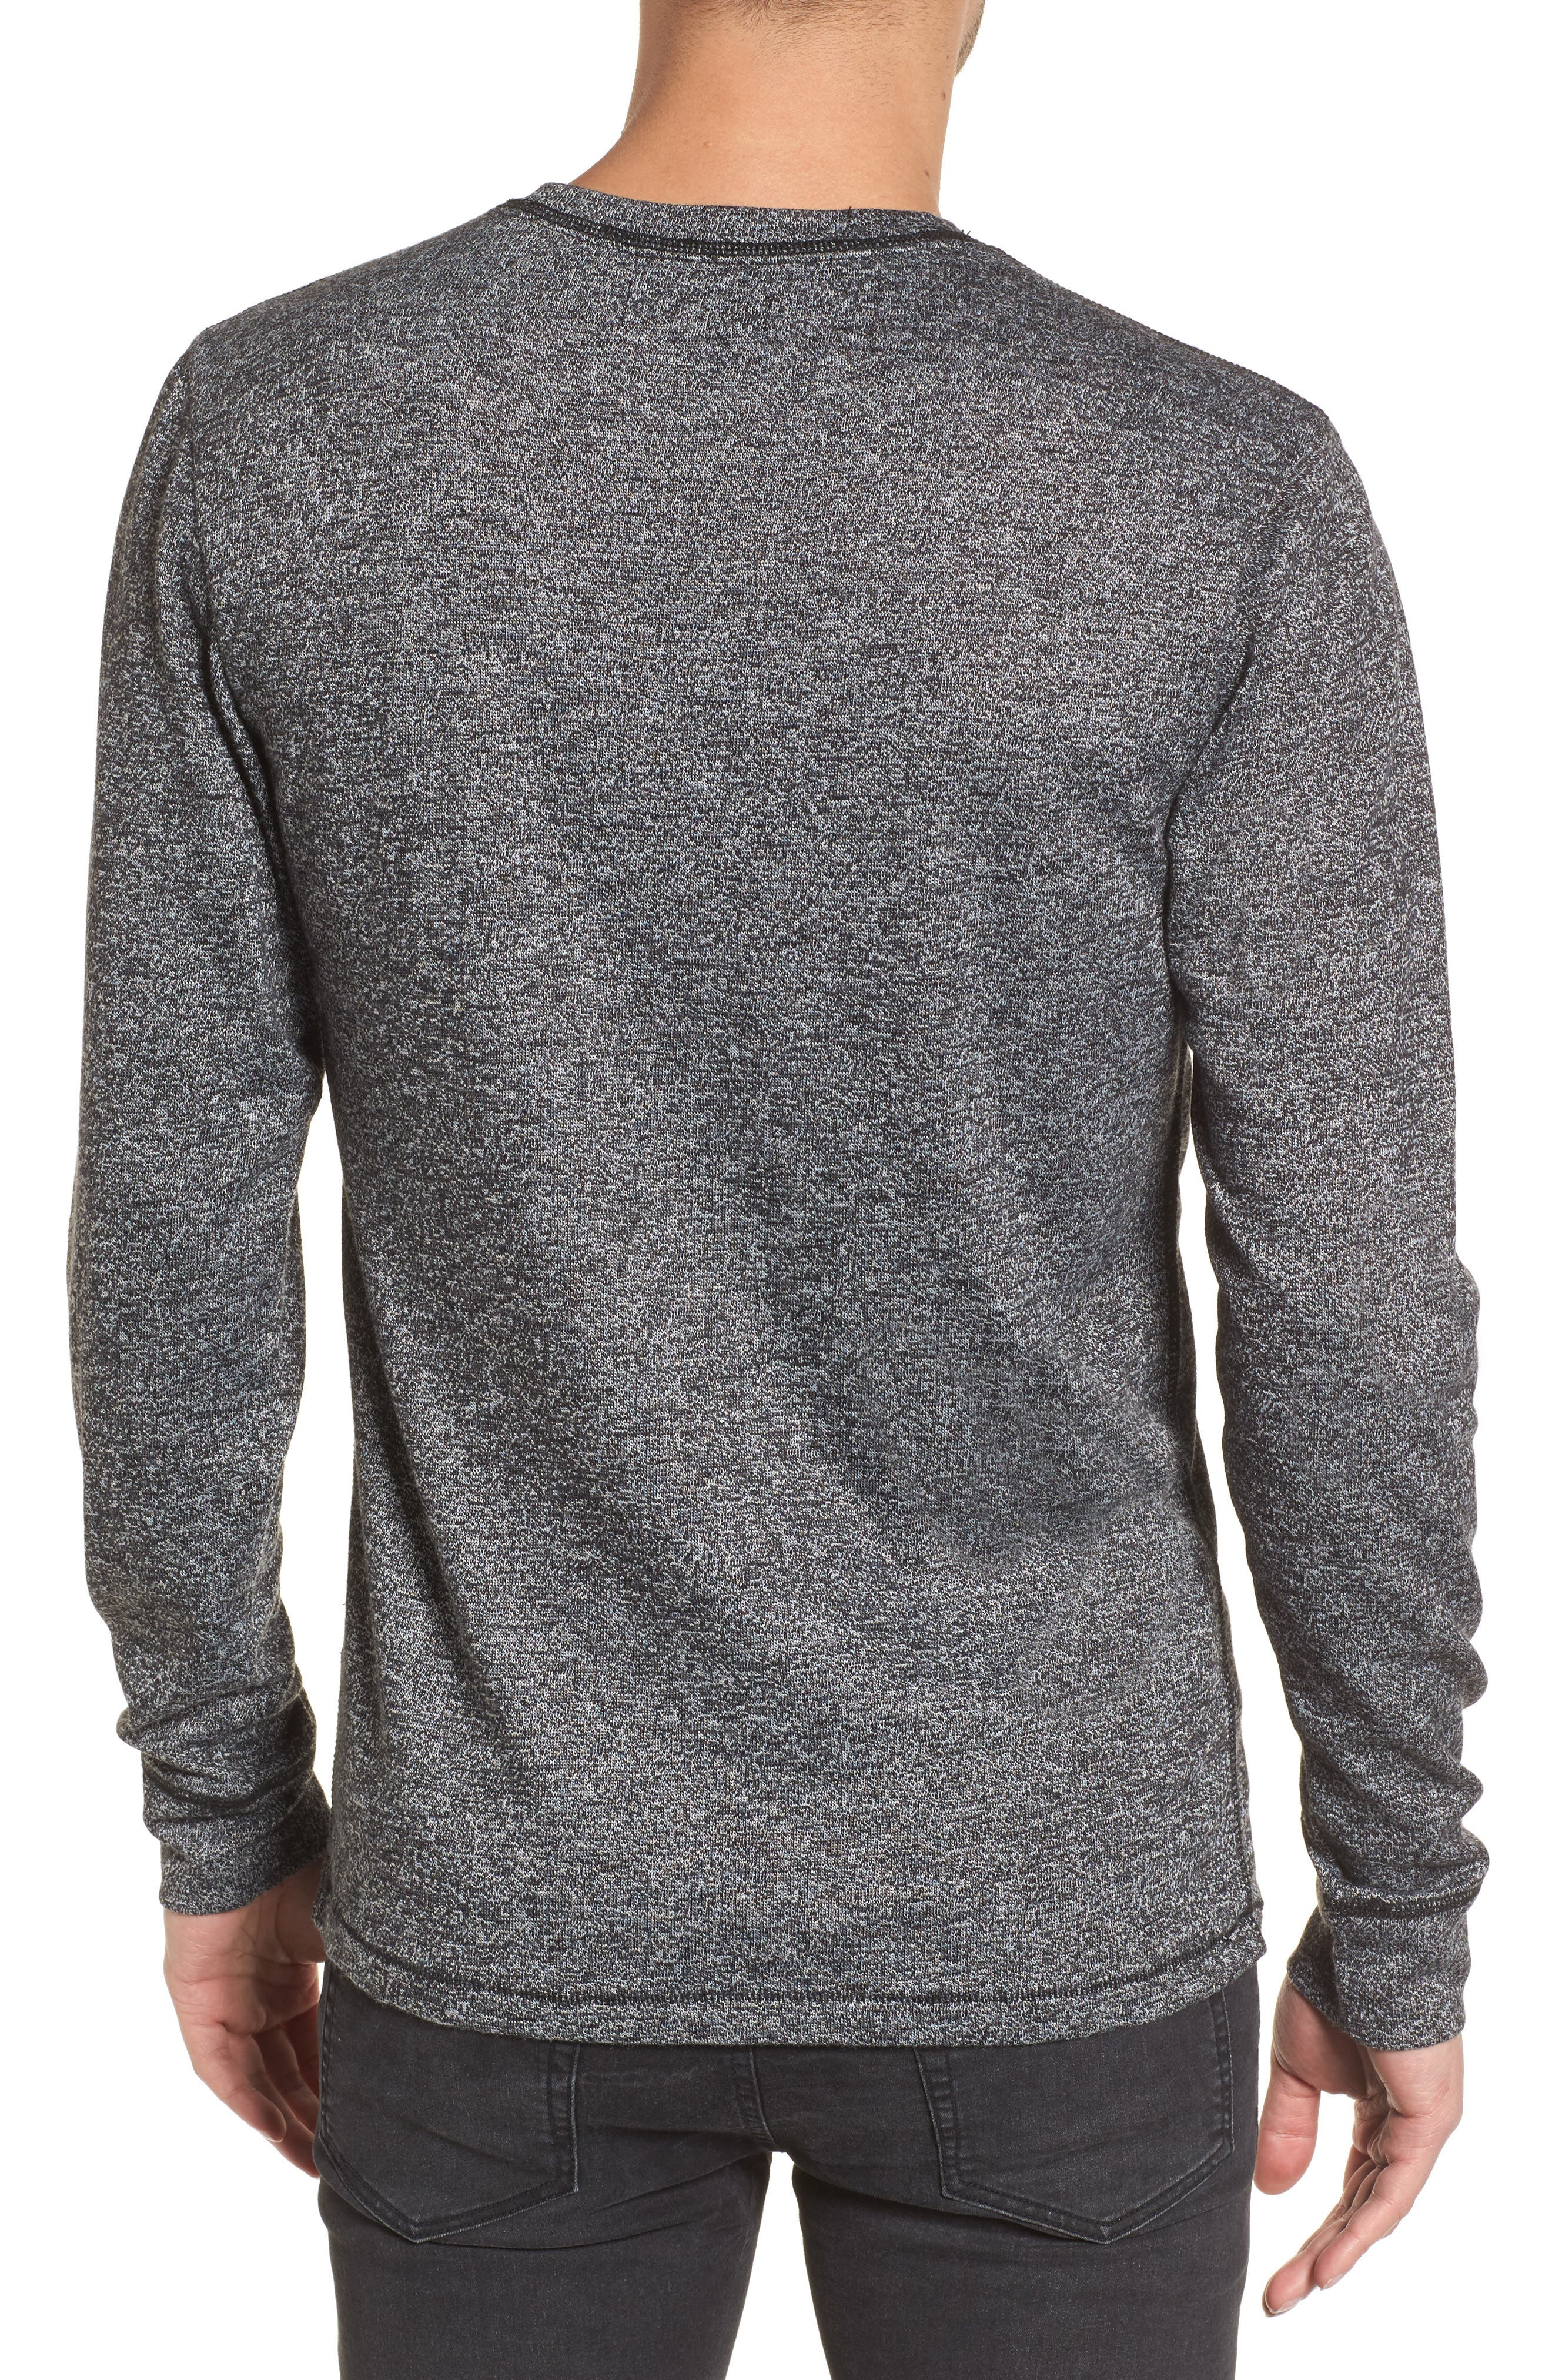 Treasure&Bond Crewneck Sweater,                             Alternate thumbnail 2, color,                             001